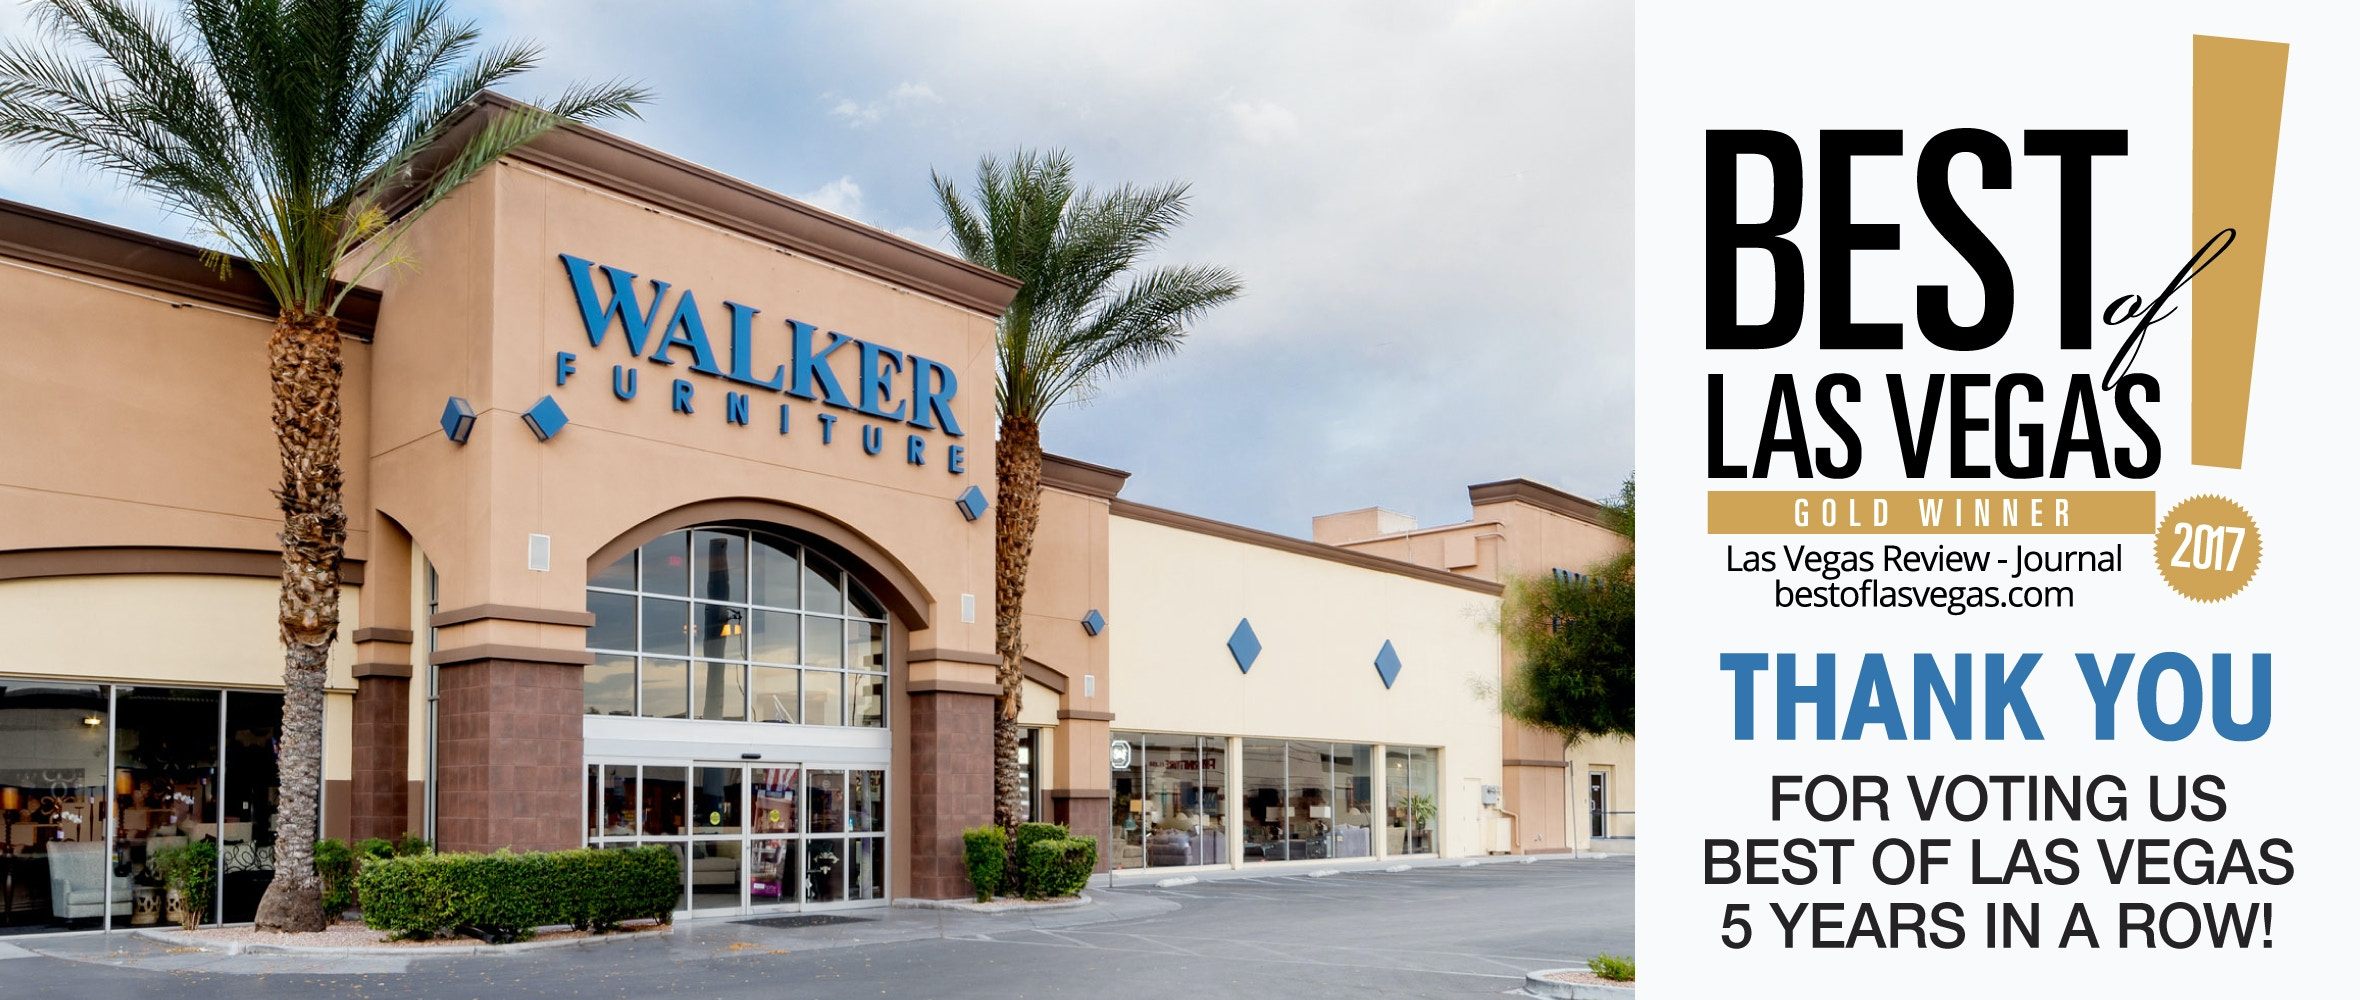 Thank for voting us Best of Las Vegas for 5 years in a row  Same day  delivery from Walker Furniture. Walker Furniture Store   Largest Selection of Furniture in Las Vegas